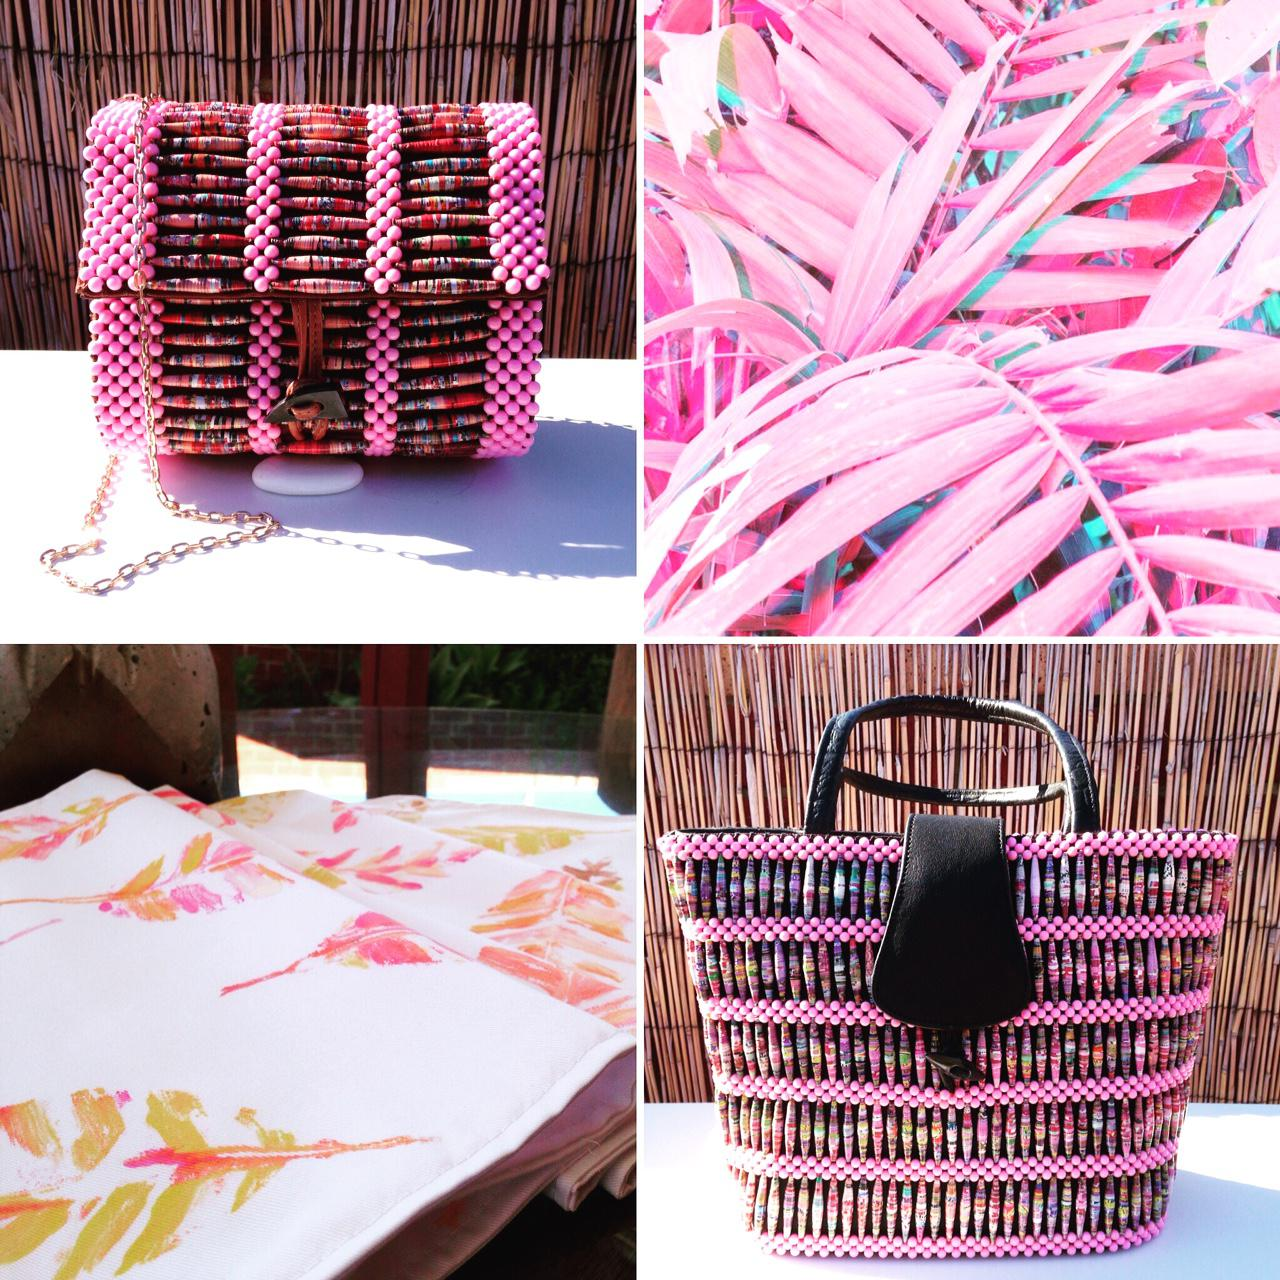 POP OF PINK! Recycled Magazine/Leather Handbags & Textile Designs